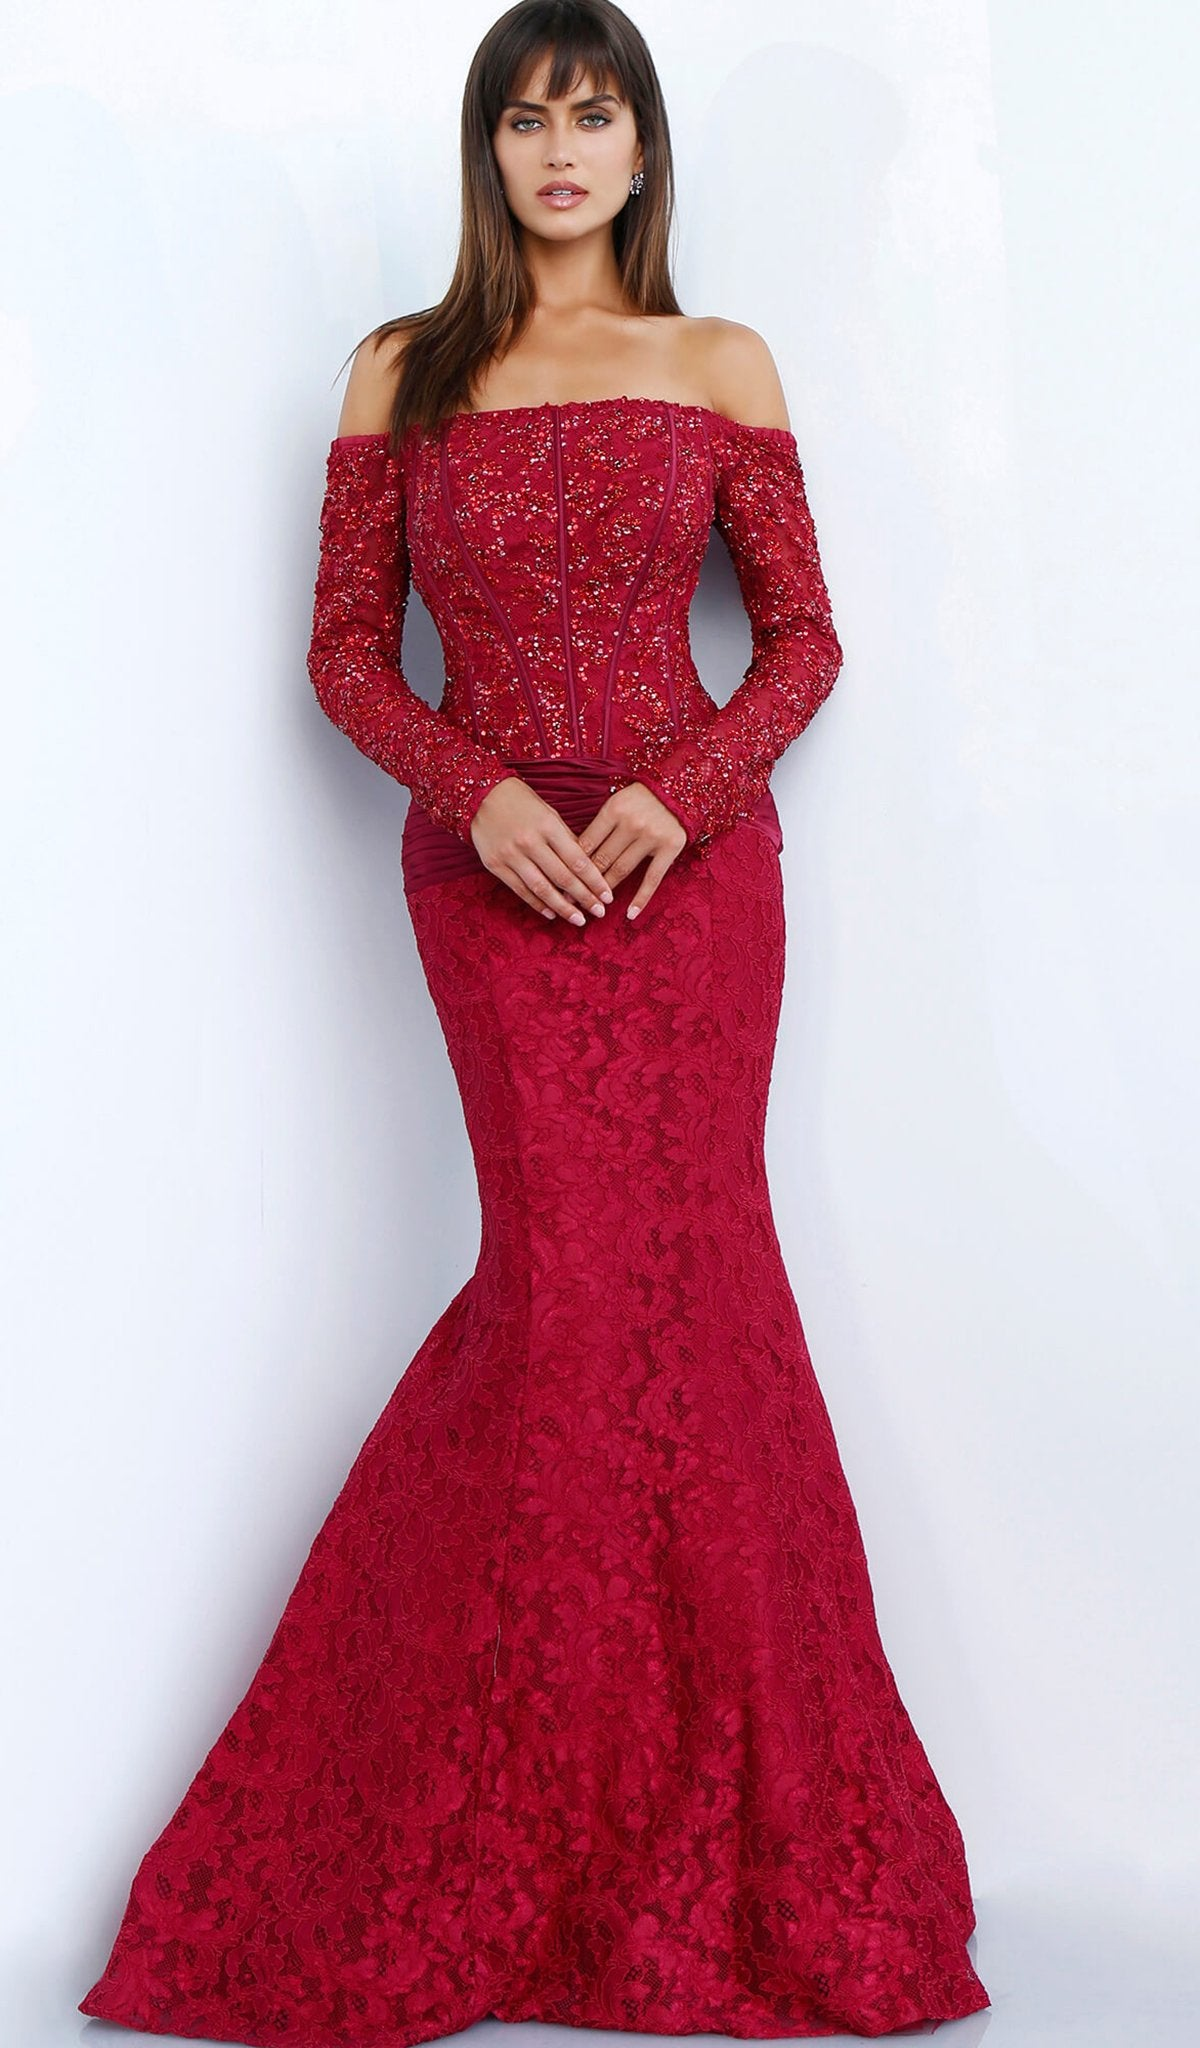 Jovani - 64822 Embellished Off-Shoulder Mermaid Dress In Red